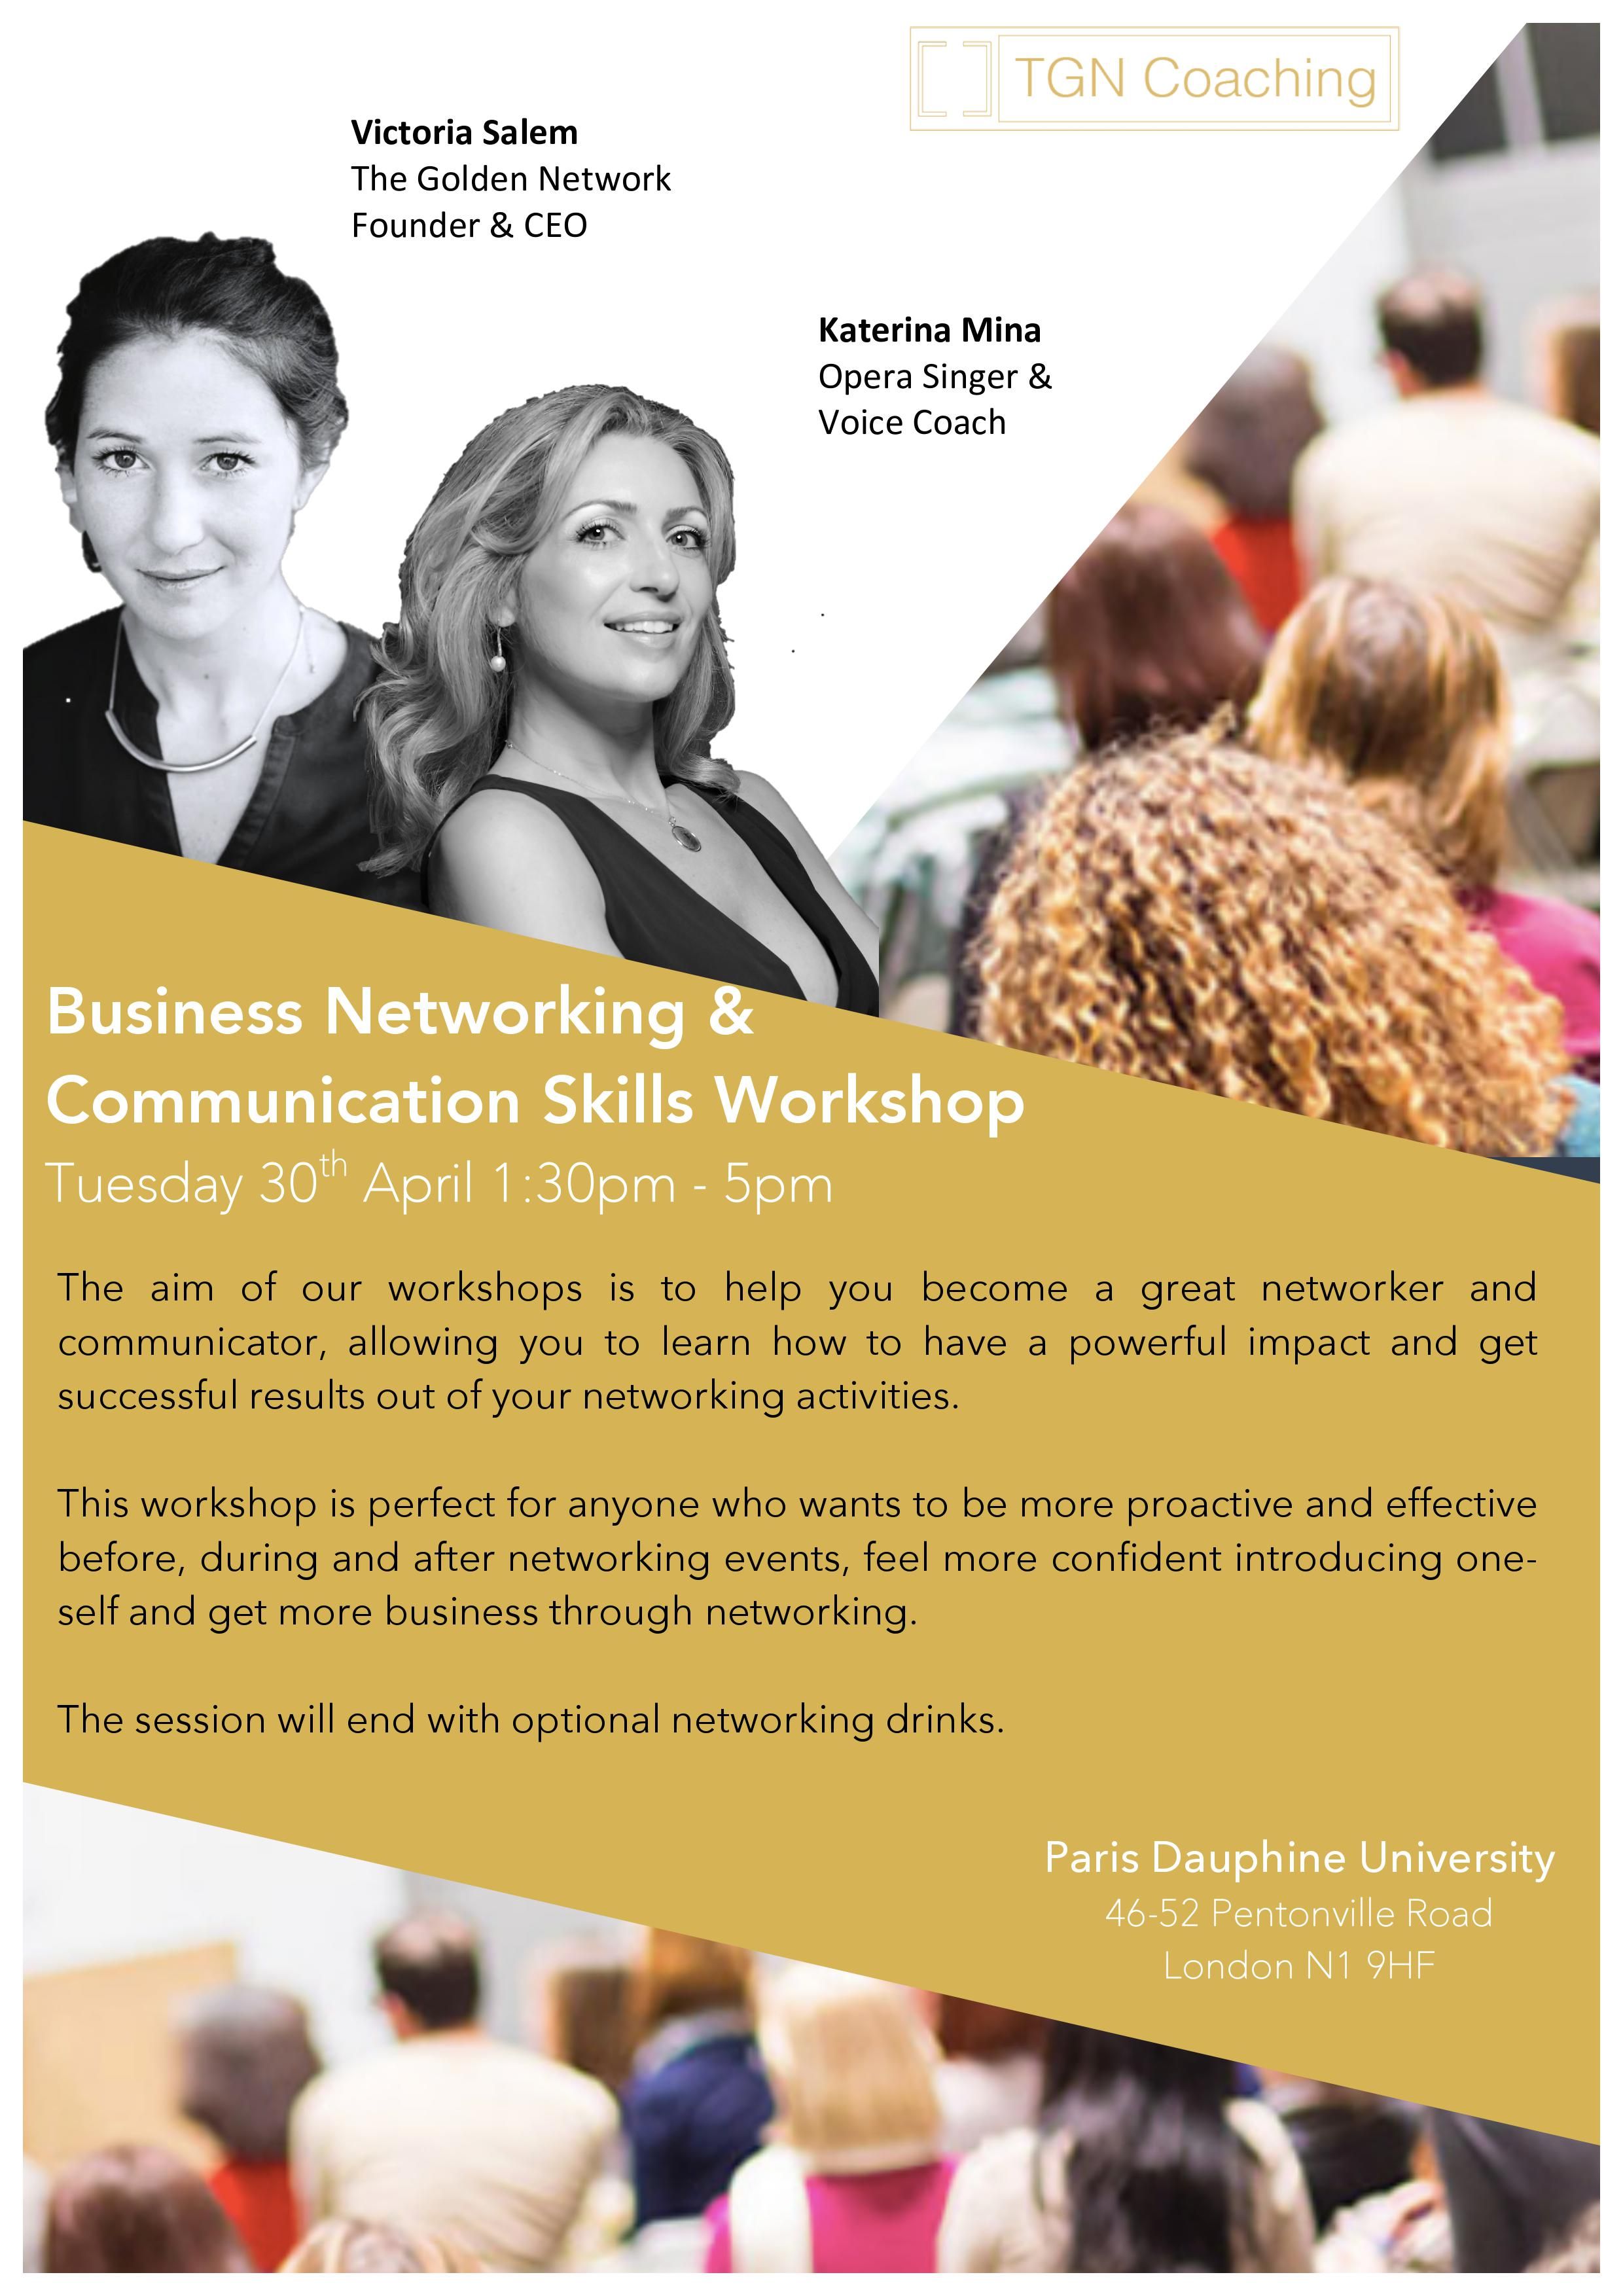 The Golden Network, Business Workshop, 30 April 2019 - Katerina is very excited to be coaching during the launch of The Golden Network's Business Coaching Sessions & Workshops, together with the Founder/CEO of The Golden Network and Entrepreneur, Victoria Salem.The Business Networking & Communications Skills Workshop will take place at the Paris Dauphine University in London.Katerina will be focusing on voice production and phonation, introducing specific breathing techniques and vocal exercises in relation to speech therapy, to help you present yourself in public using the natural tone of your voice, projected with certain confidence and charm.